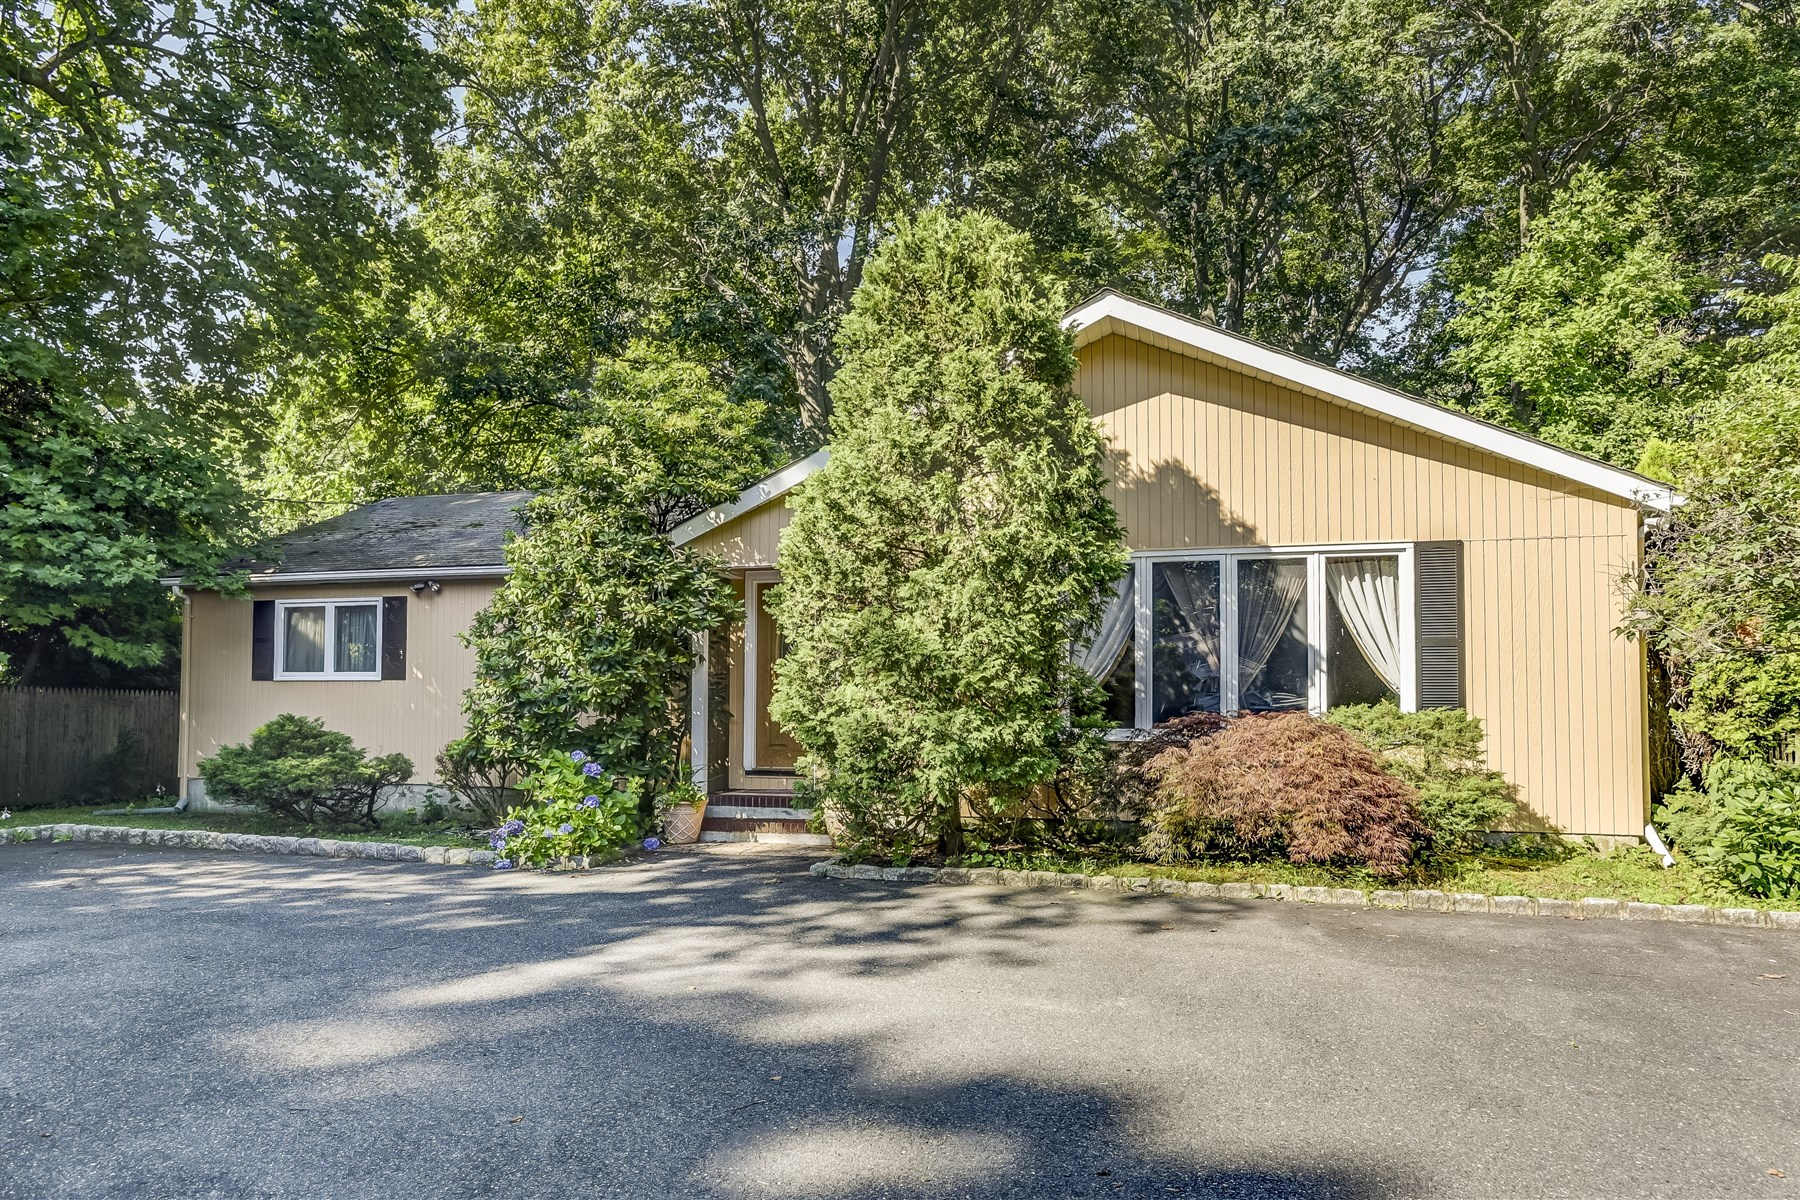 Single Family Home for Sale at Fabulous Fair Haven! 2 Rutgers Drive Fair Haven, New Jersey, 07704 United States